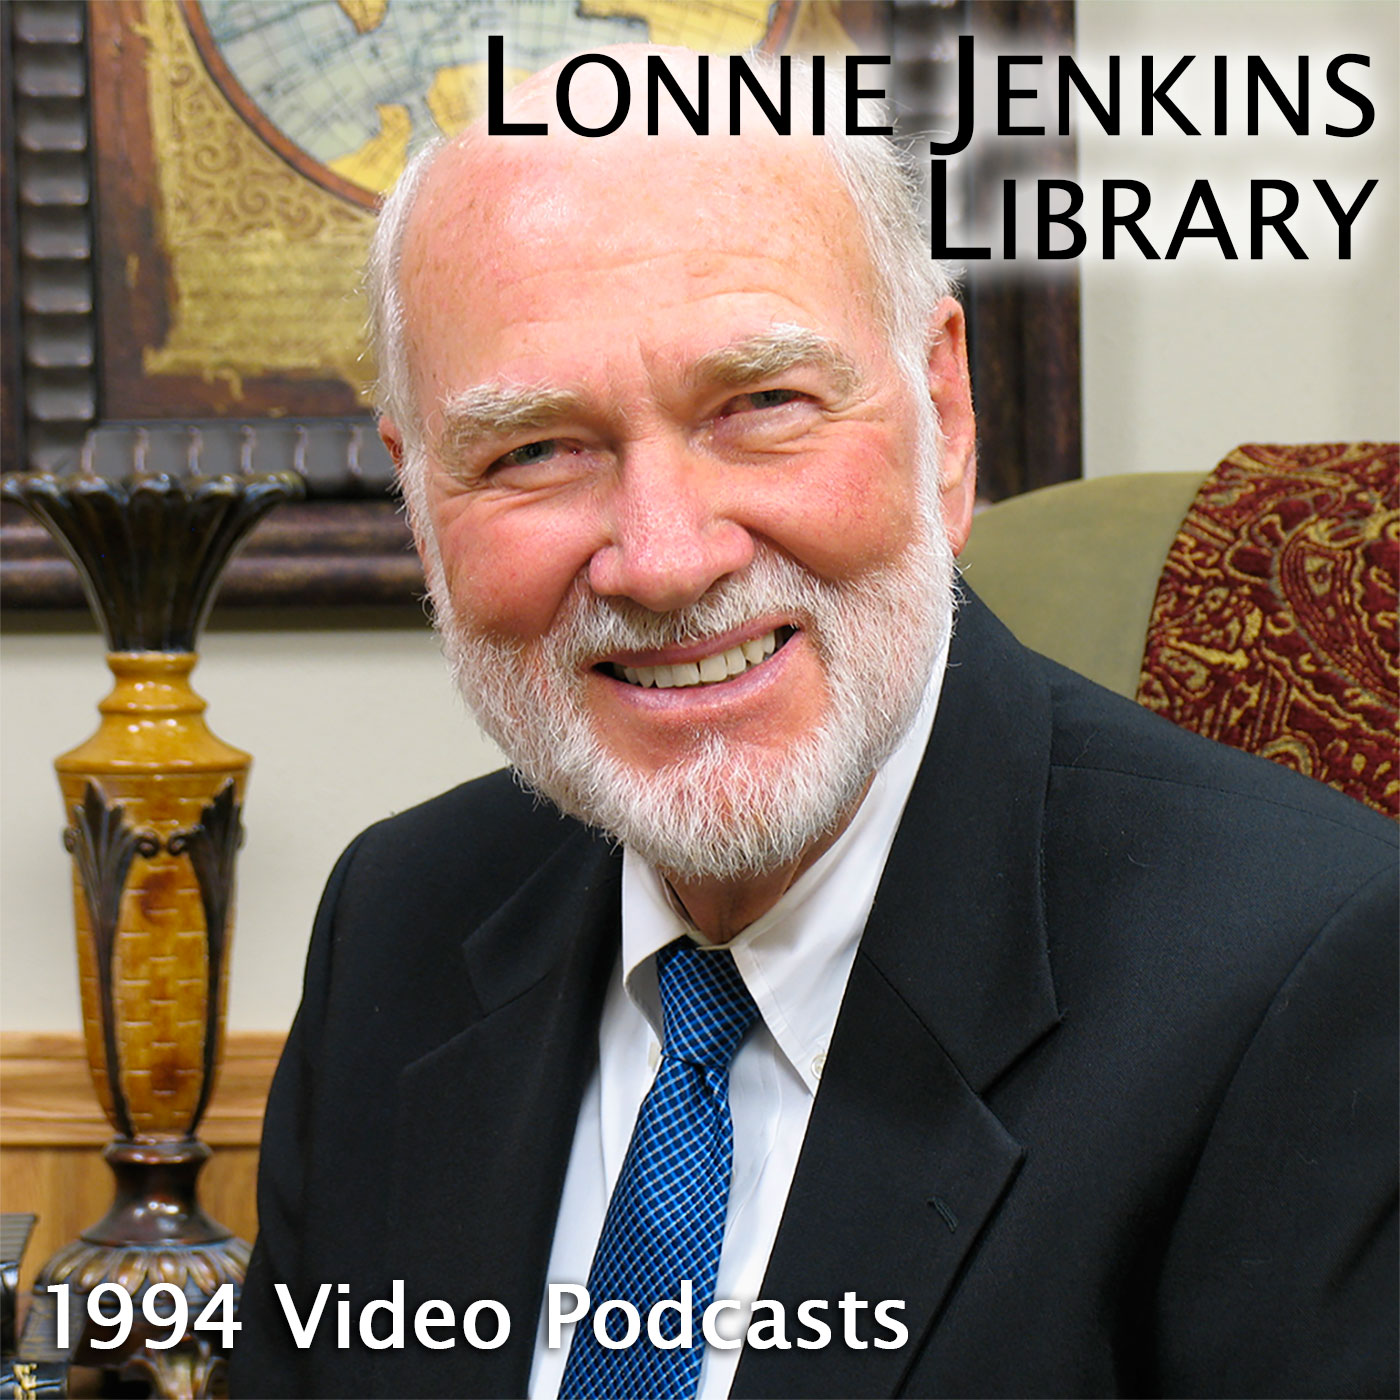 BCF 1994 Video Archives - Lonnie Jenkins